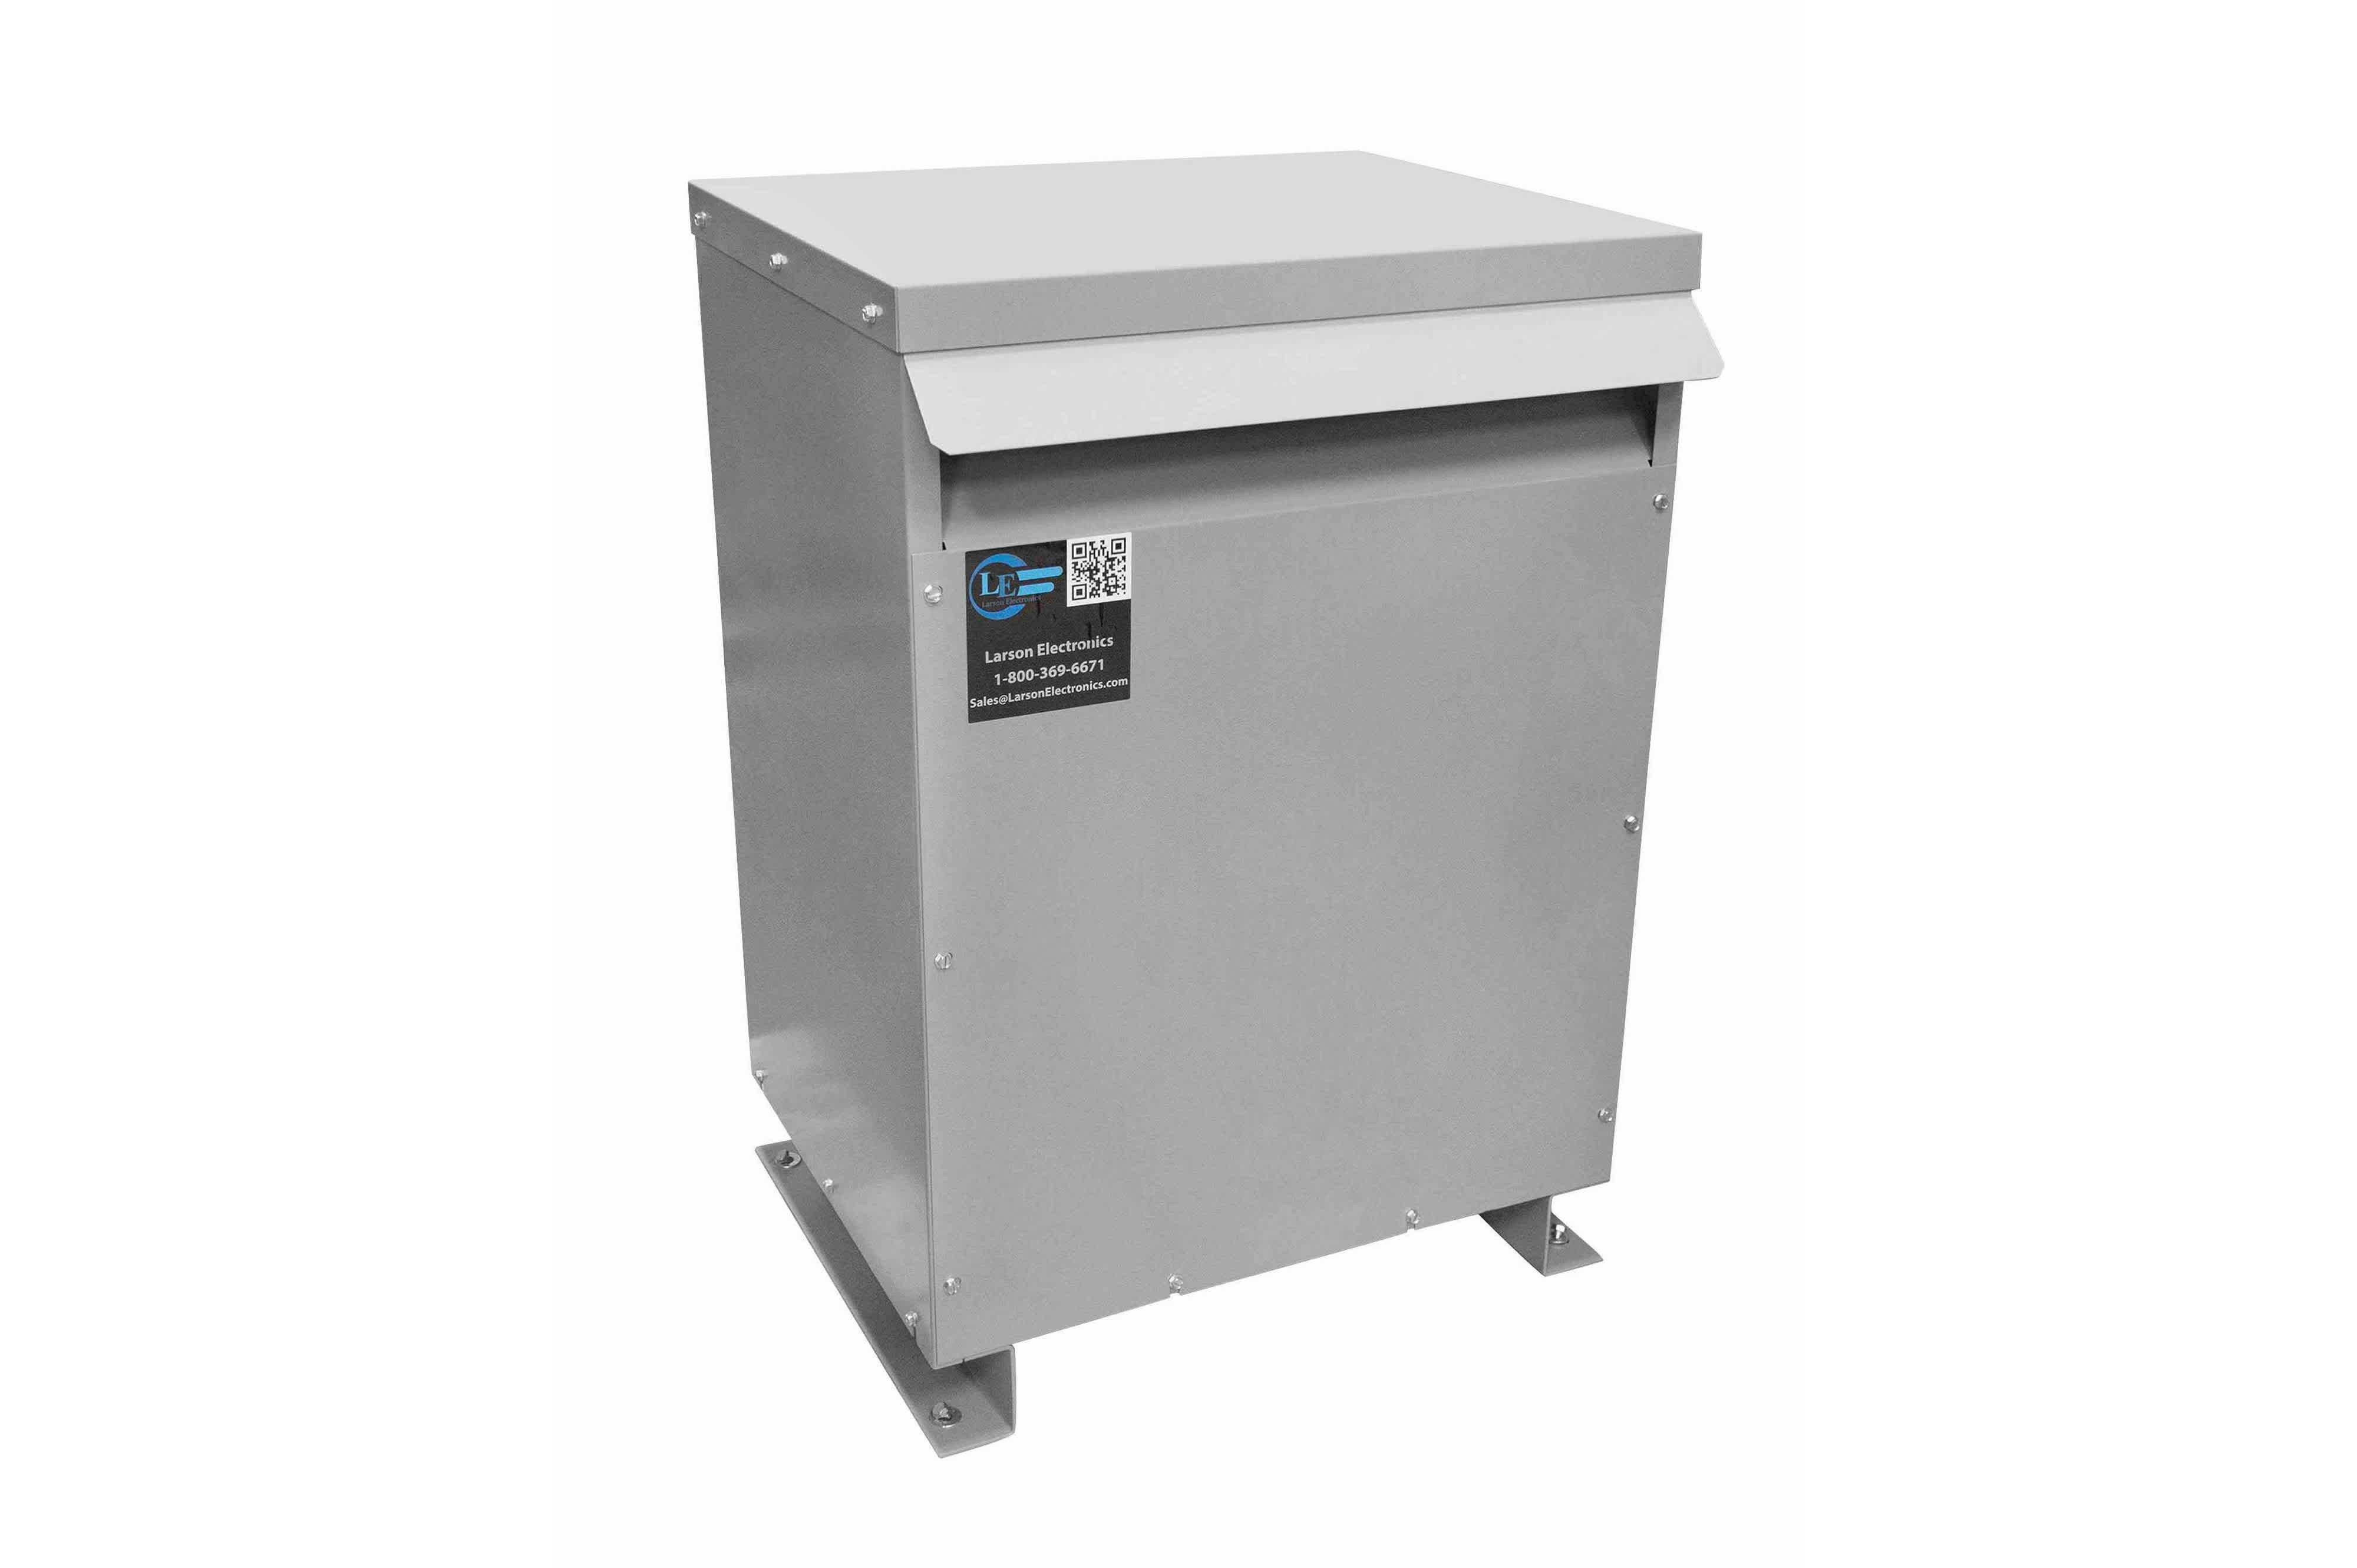 80 kVA 3PH Isolation Transformer, 480V Delta Primary, 480V Delta Secondary, N3R, Ventilated, 60 Hz